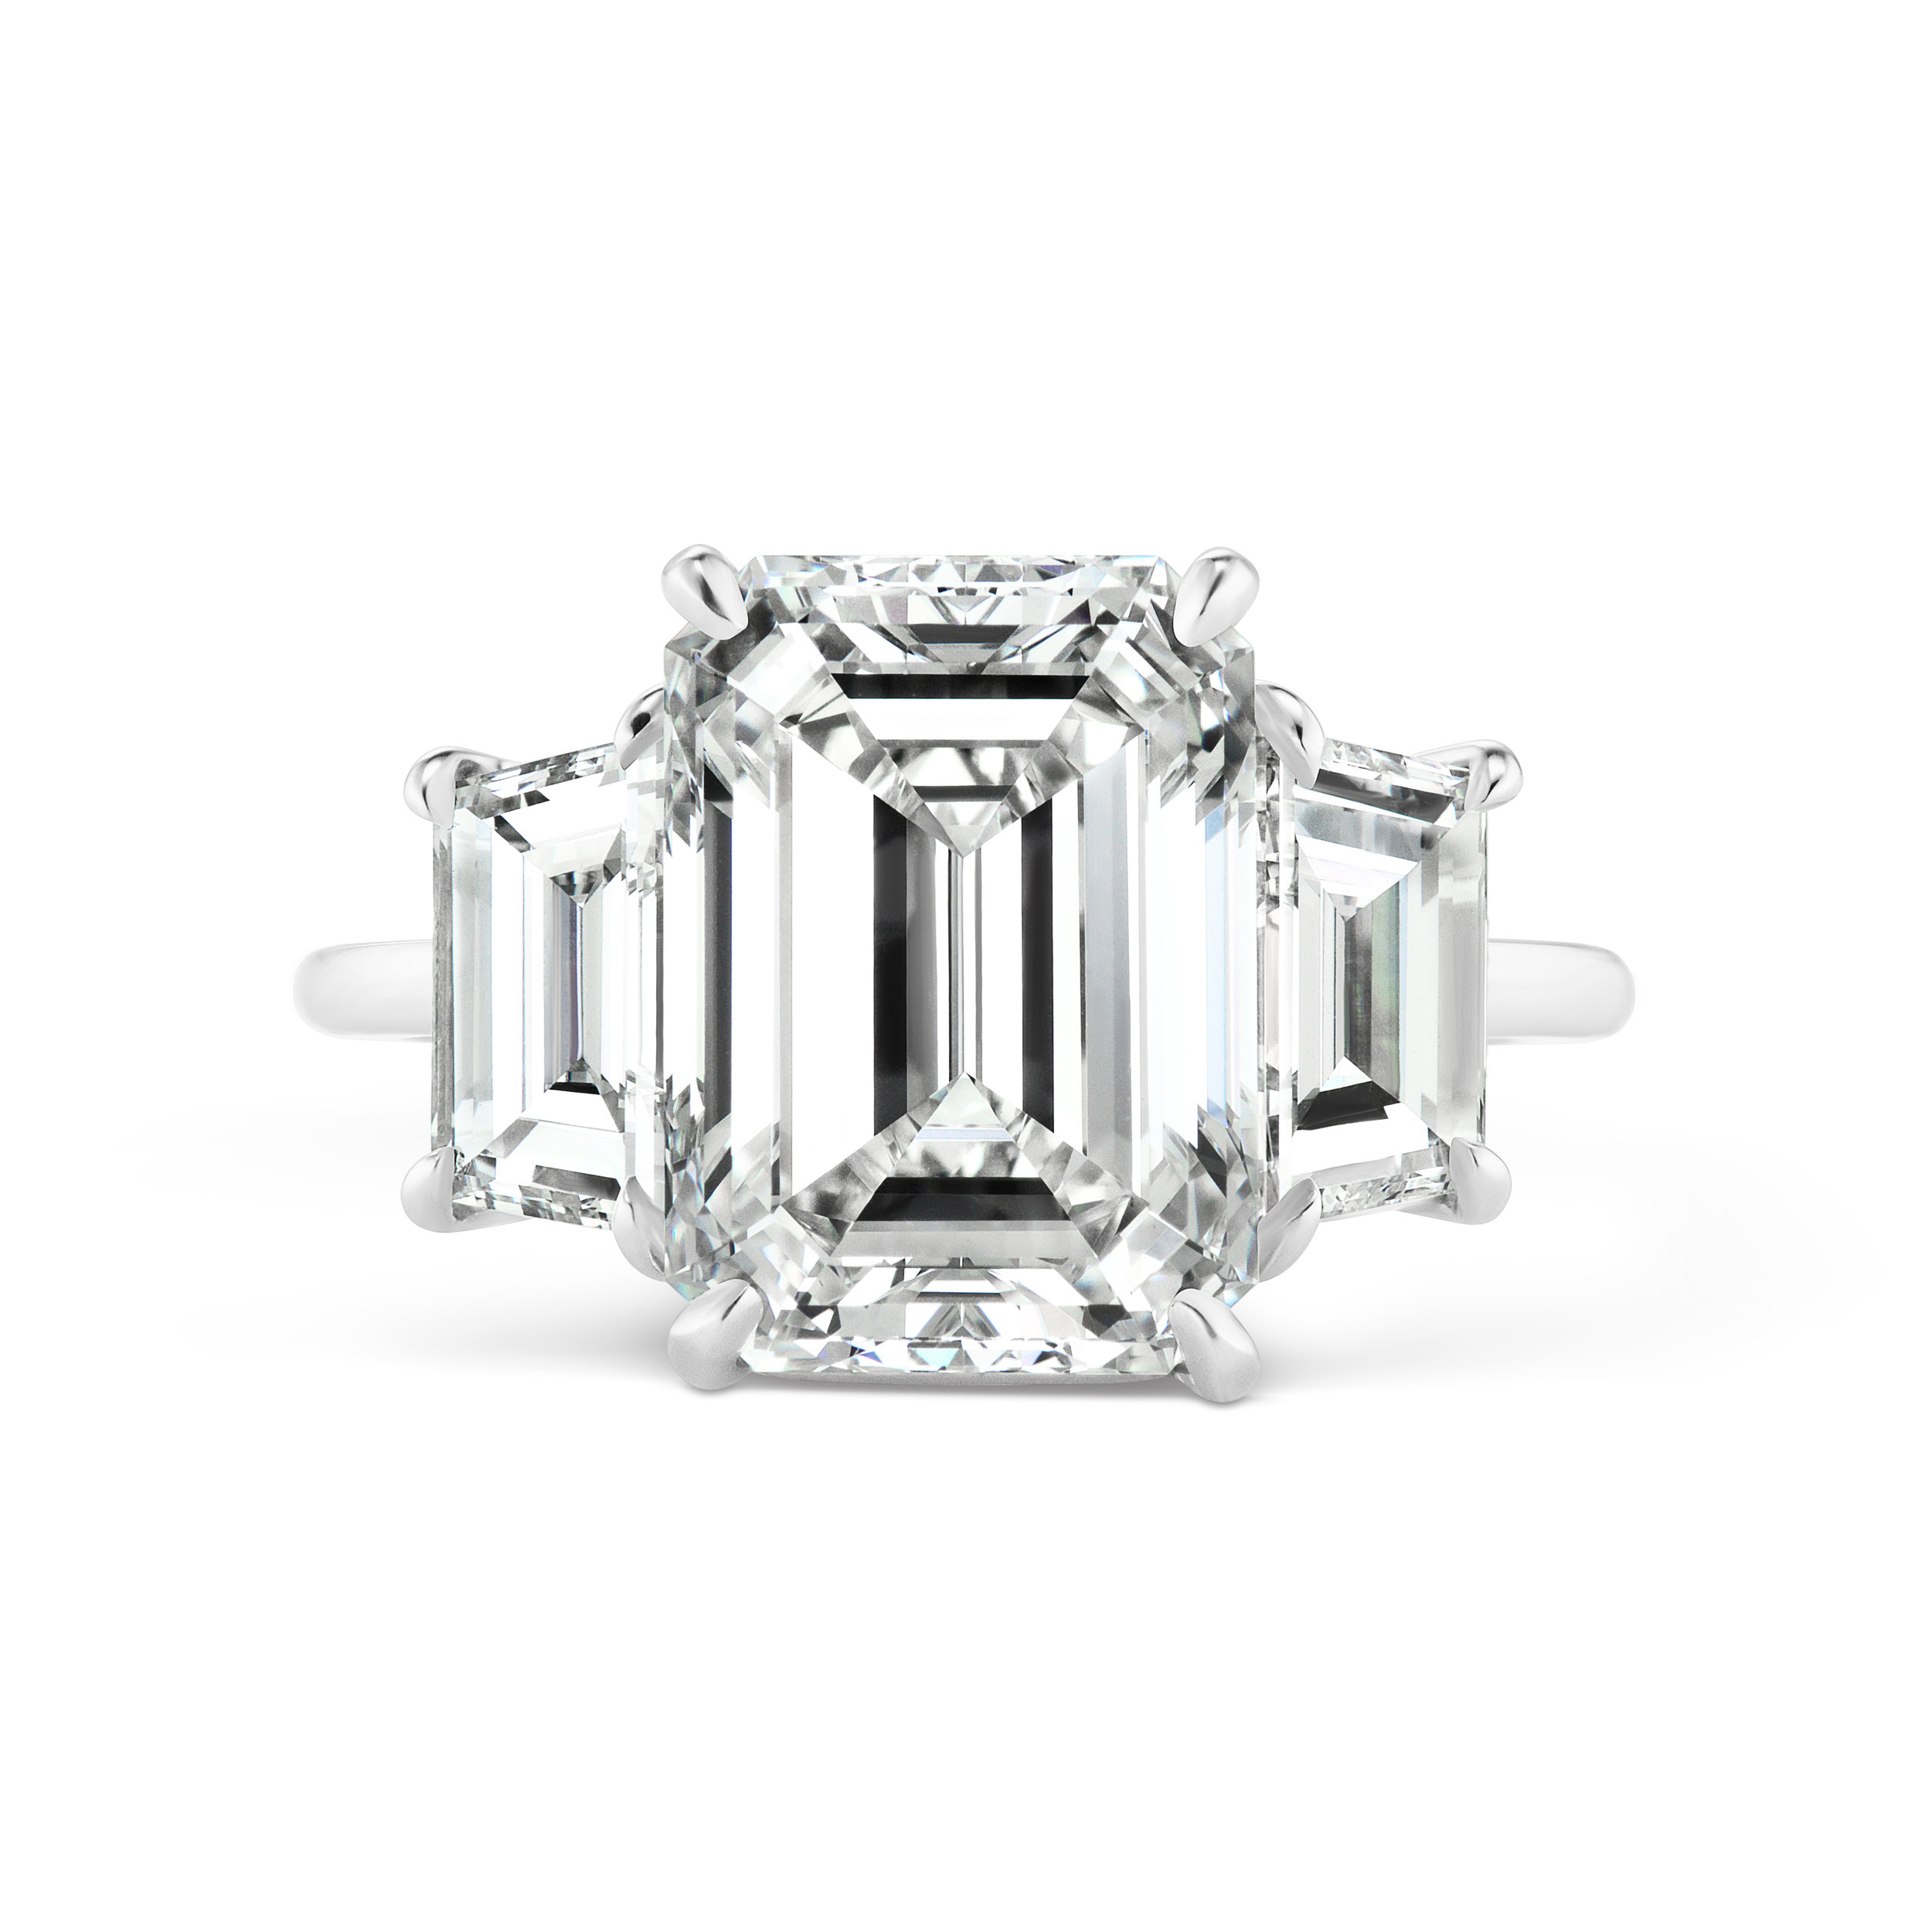 Emerald cut diamond ring with trapezoid side stones, mounted in platinum.